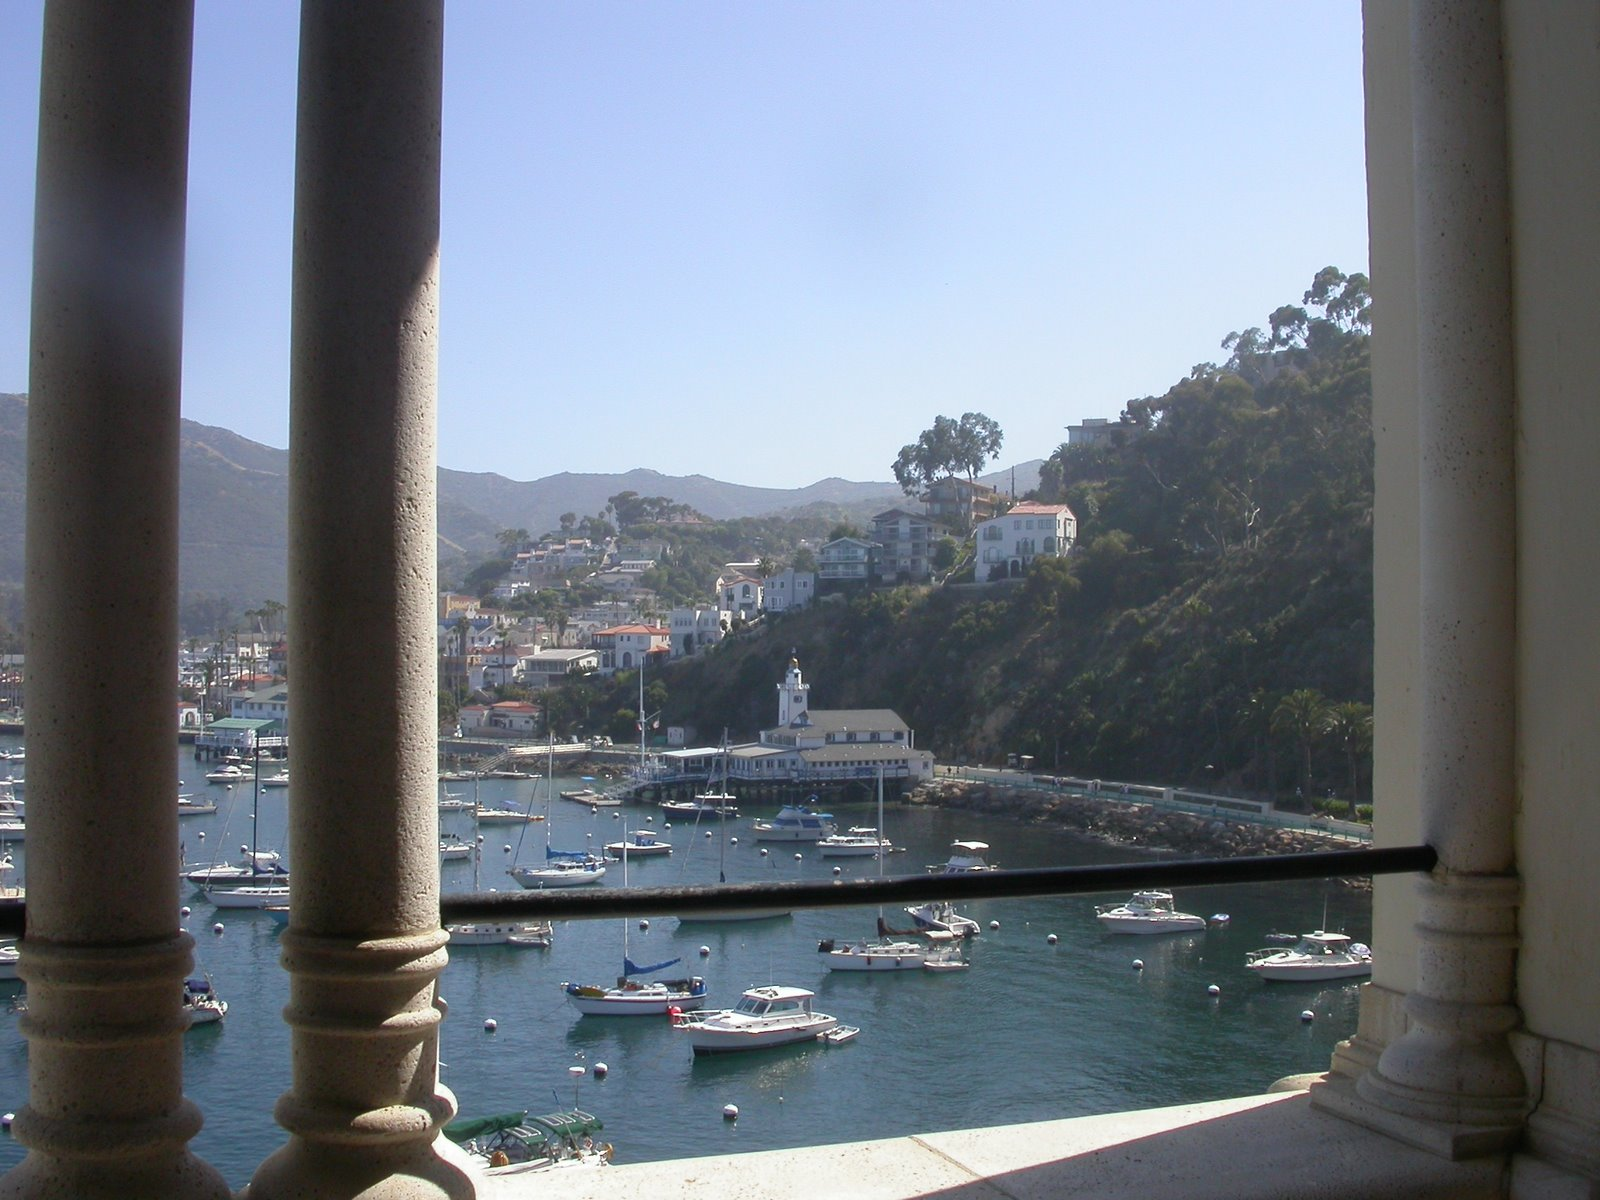 Catalina Island, California's only island resort